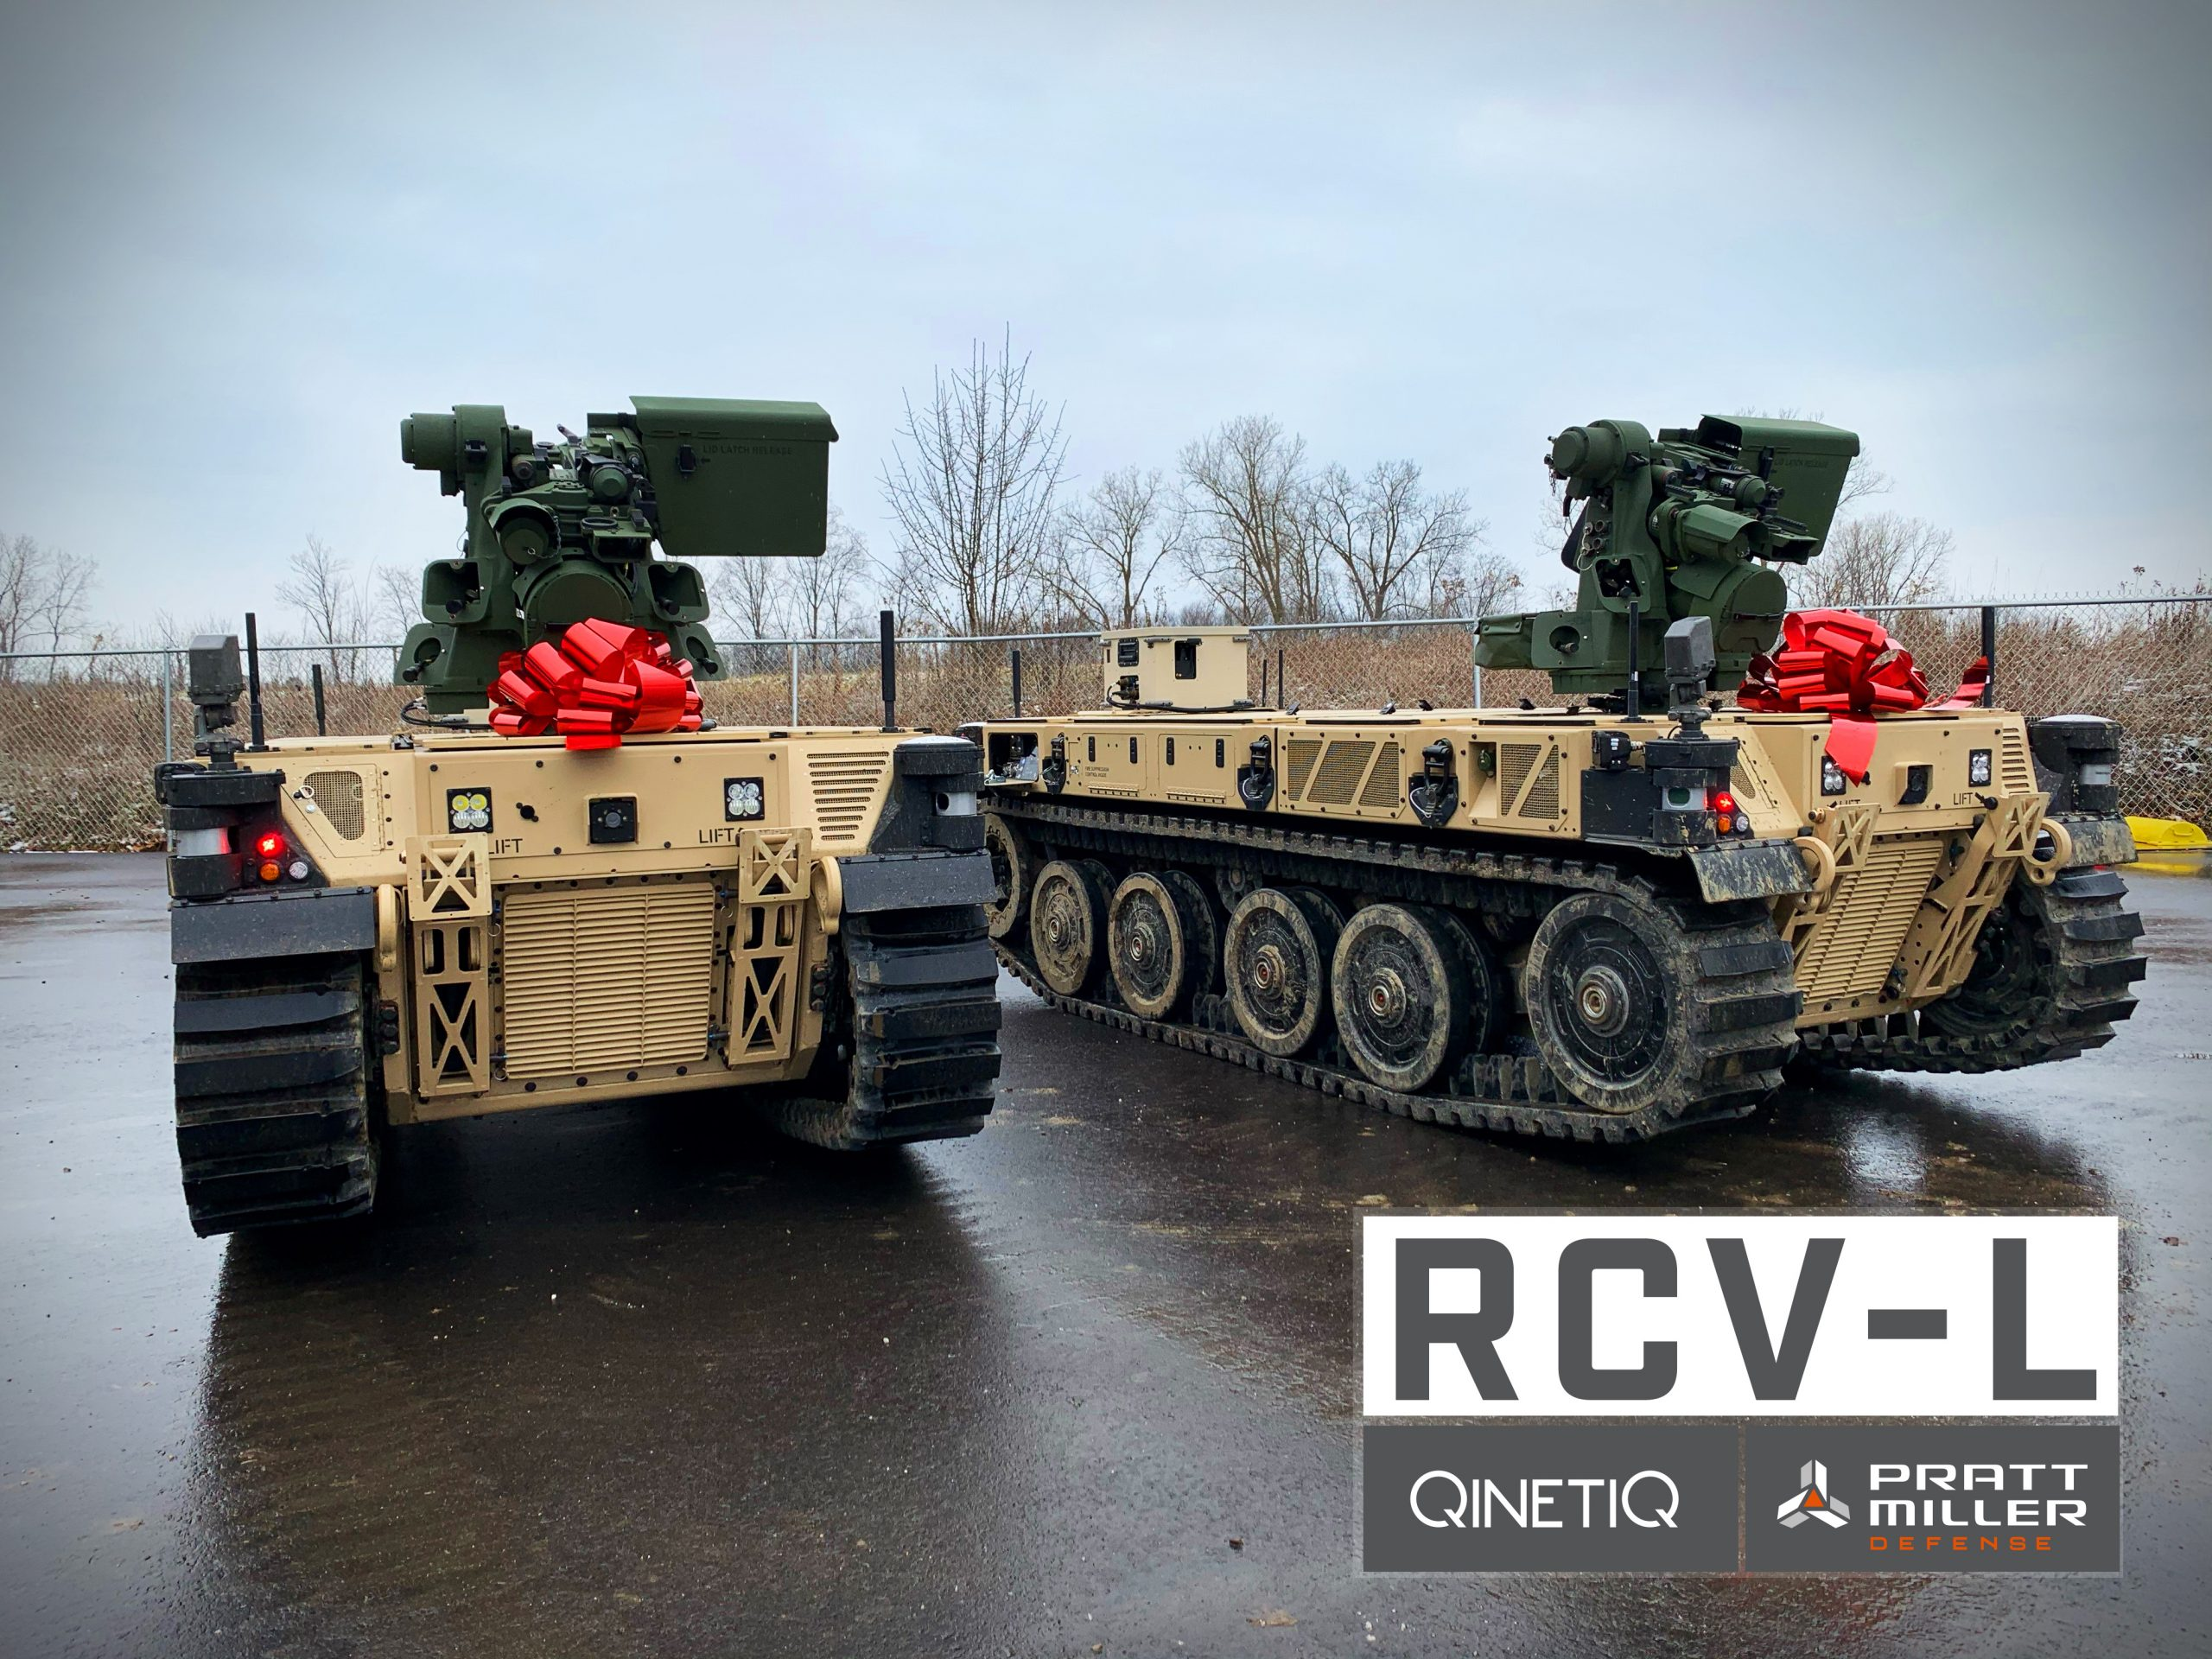 U.S. Army Expands Its Ground-Based Robot Fleet